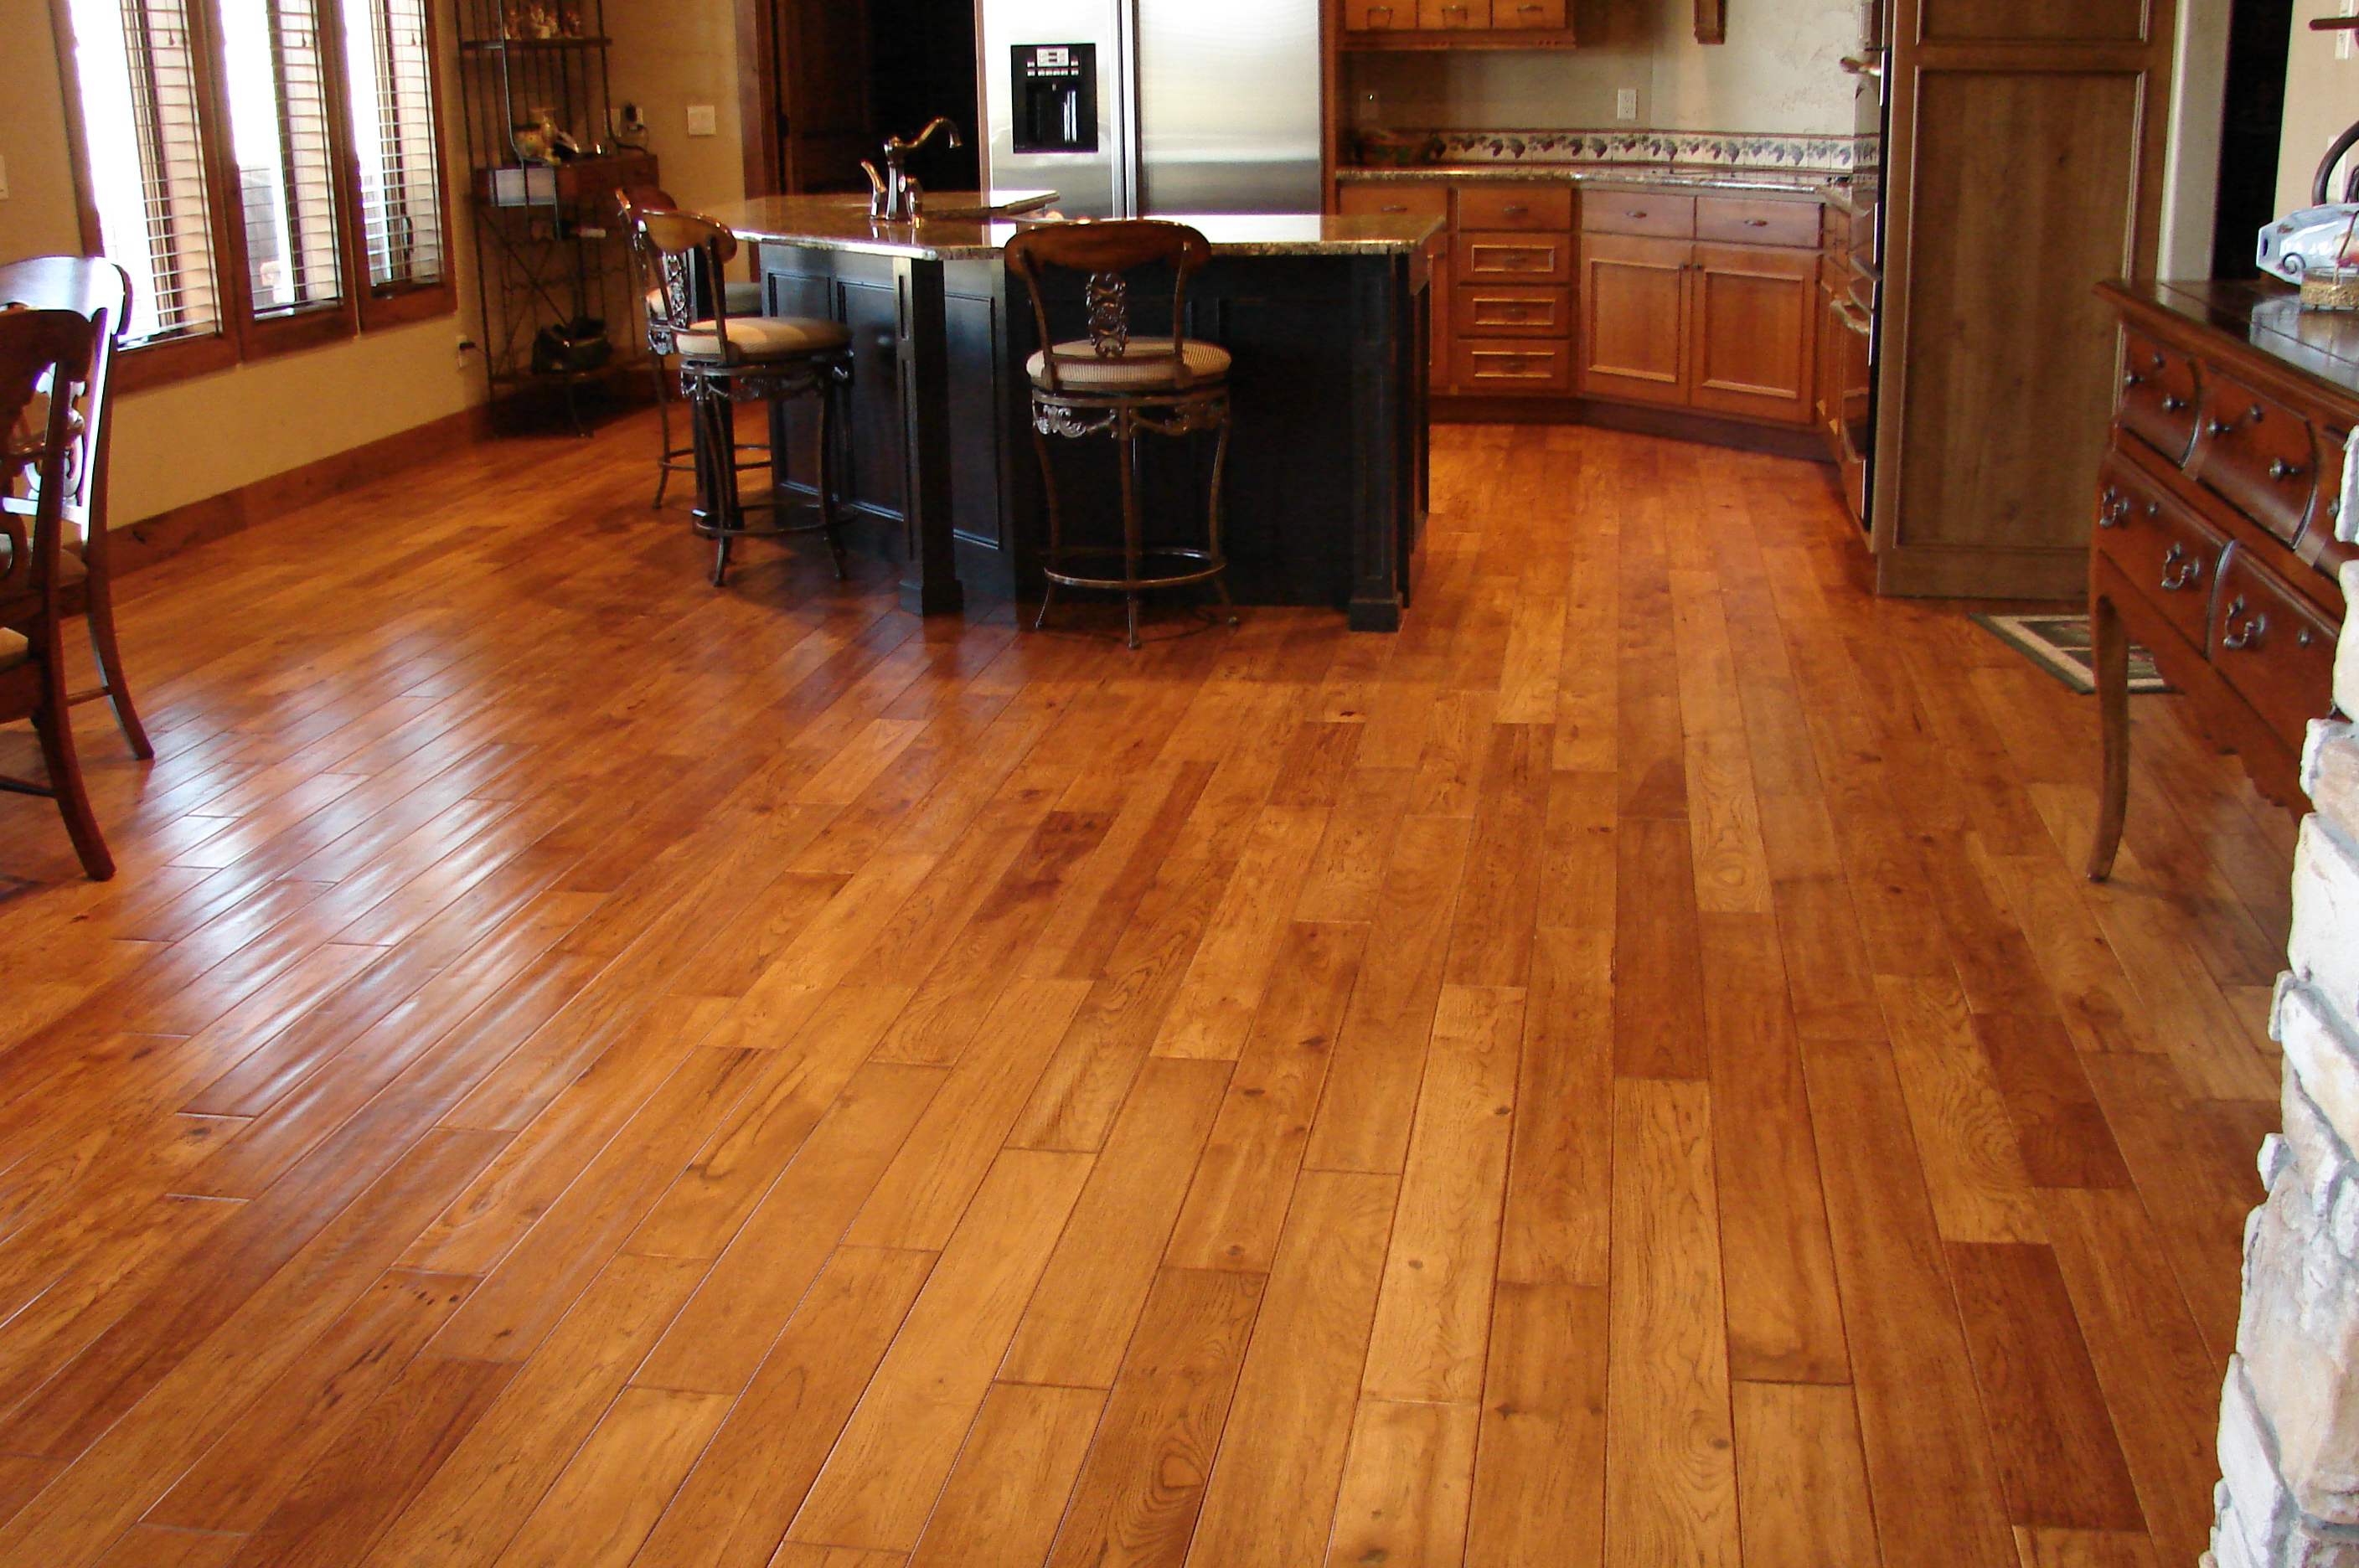 hard wood floors big kitchen hardwood floor ZVGKEQF